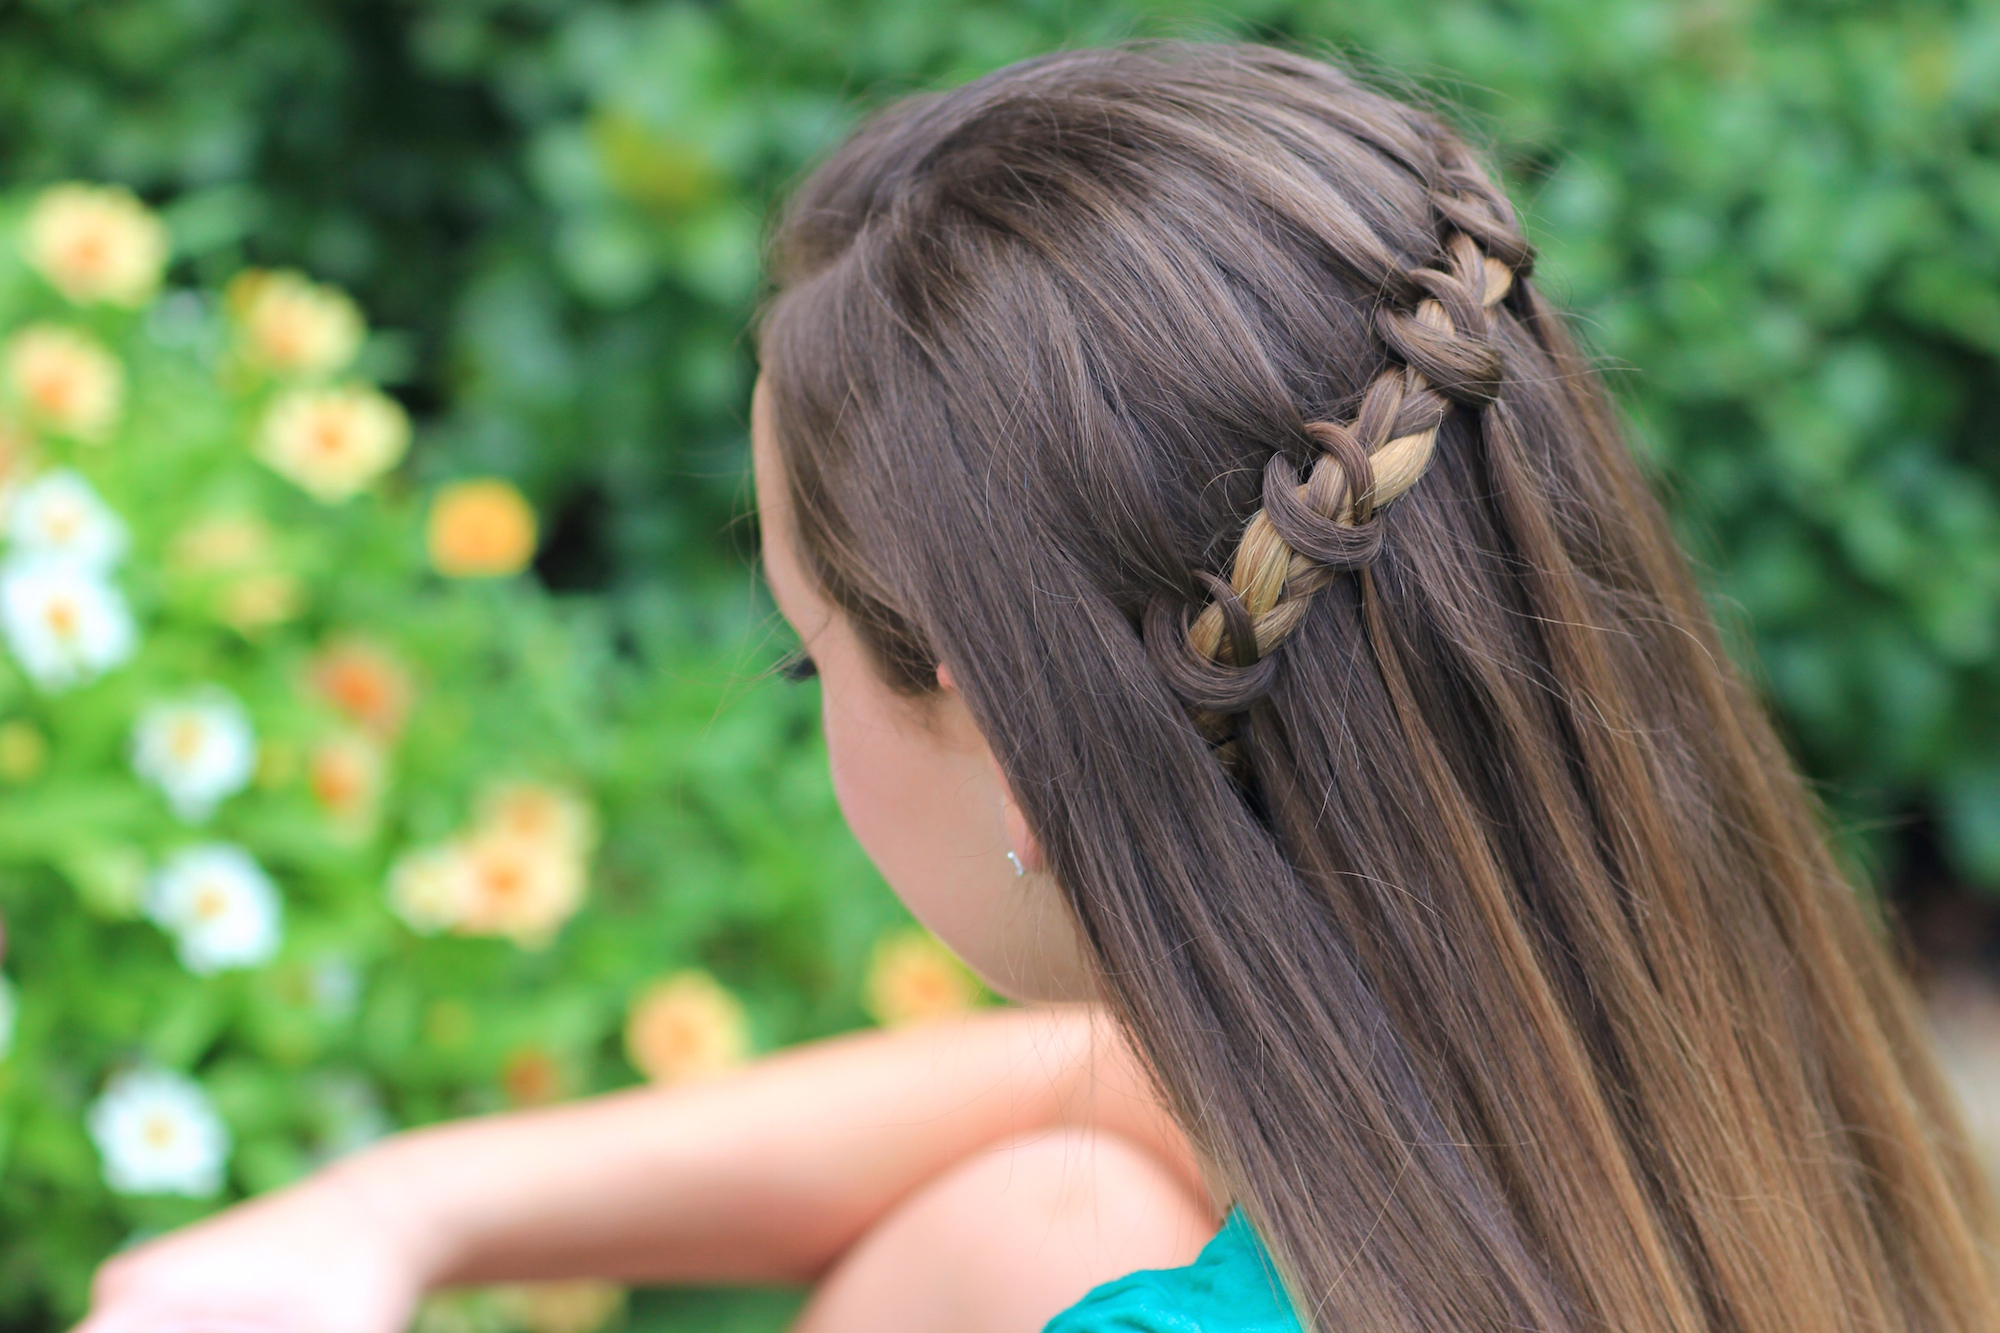 The Knotted Waterfall Braid – Cute Girls Hairstyles For Current The Waterfall Braid Hairstyles (View 5 of 20)